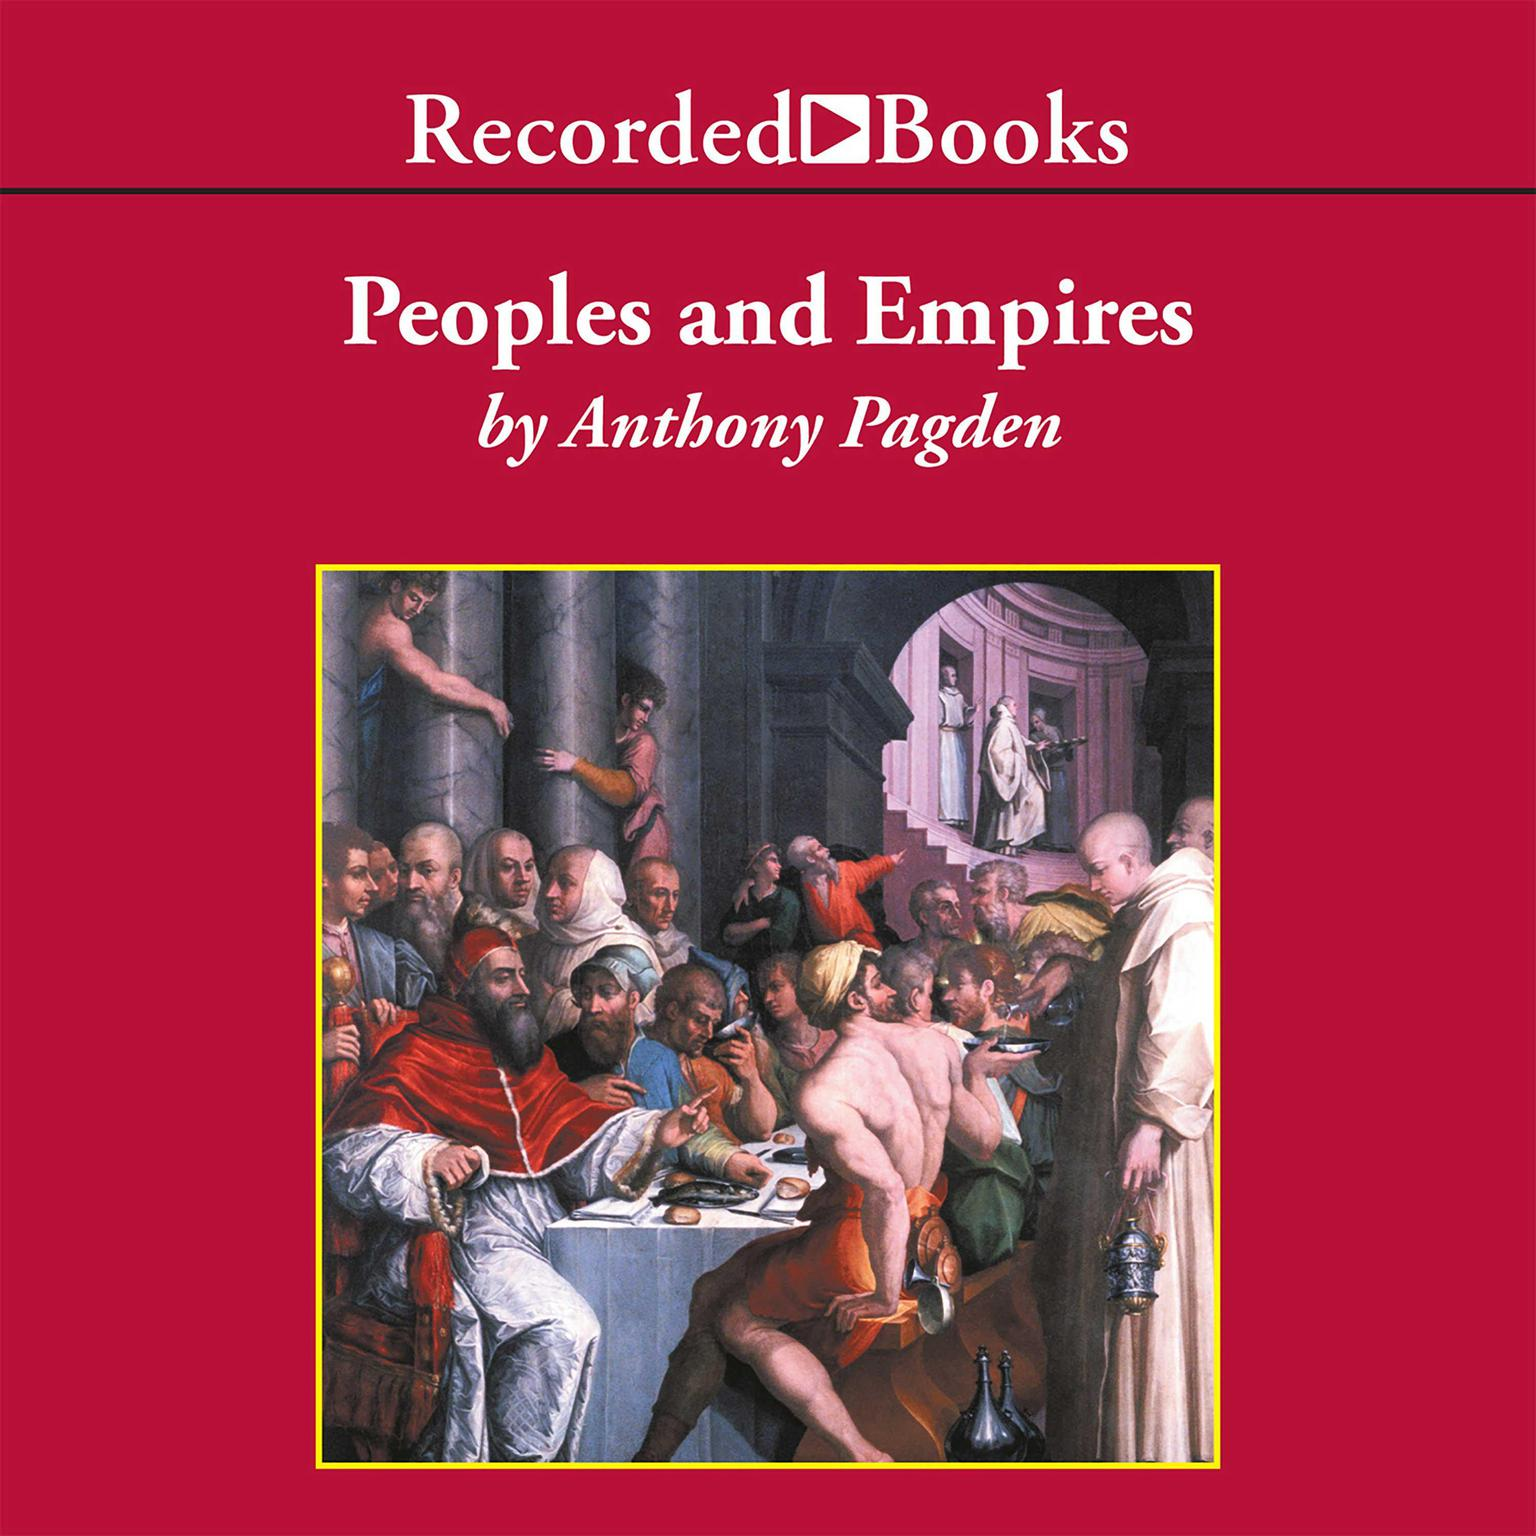 Peoples and Empires: A Short History of European Migration, Exploration, and Conquest, from Greece to the Present Audiobook, by Anthony Pagden